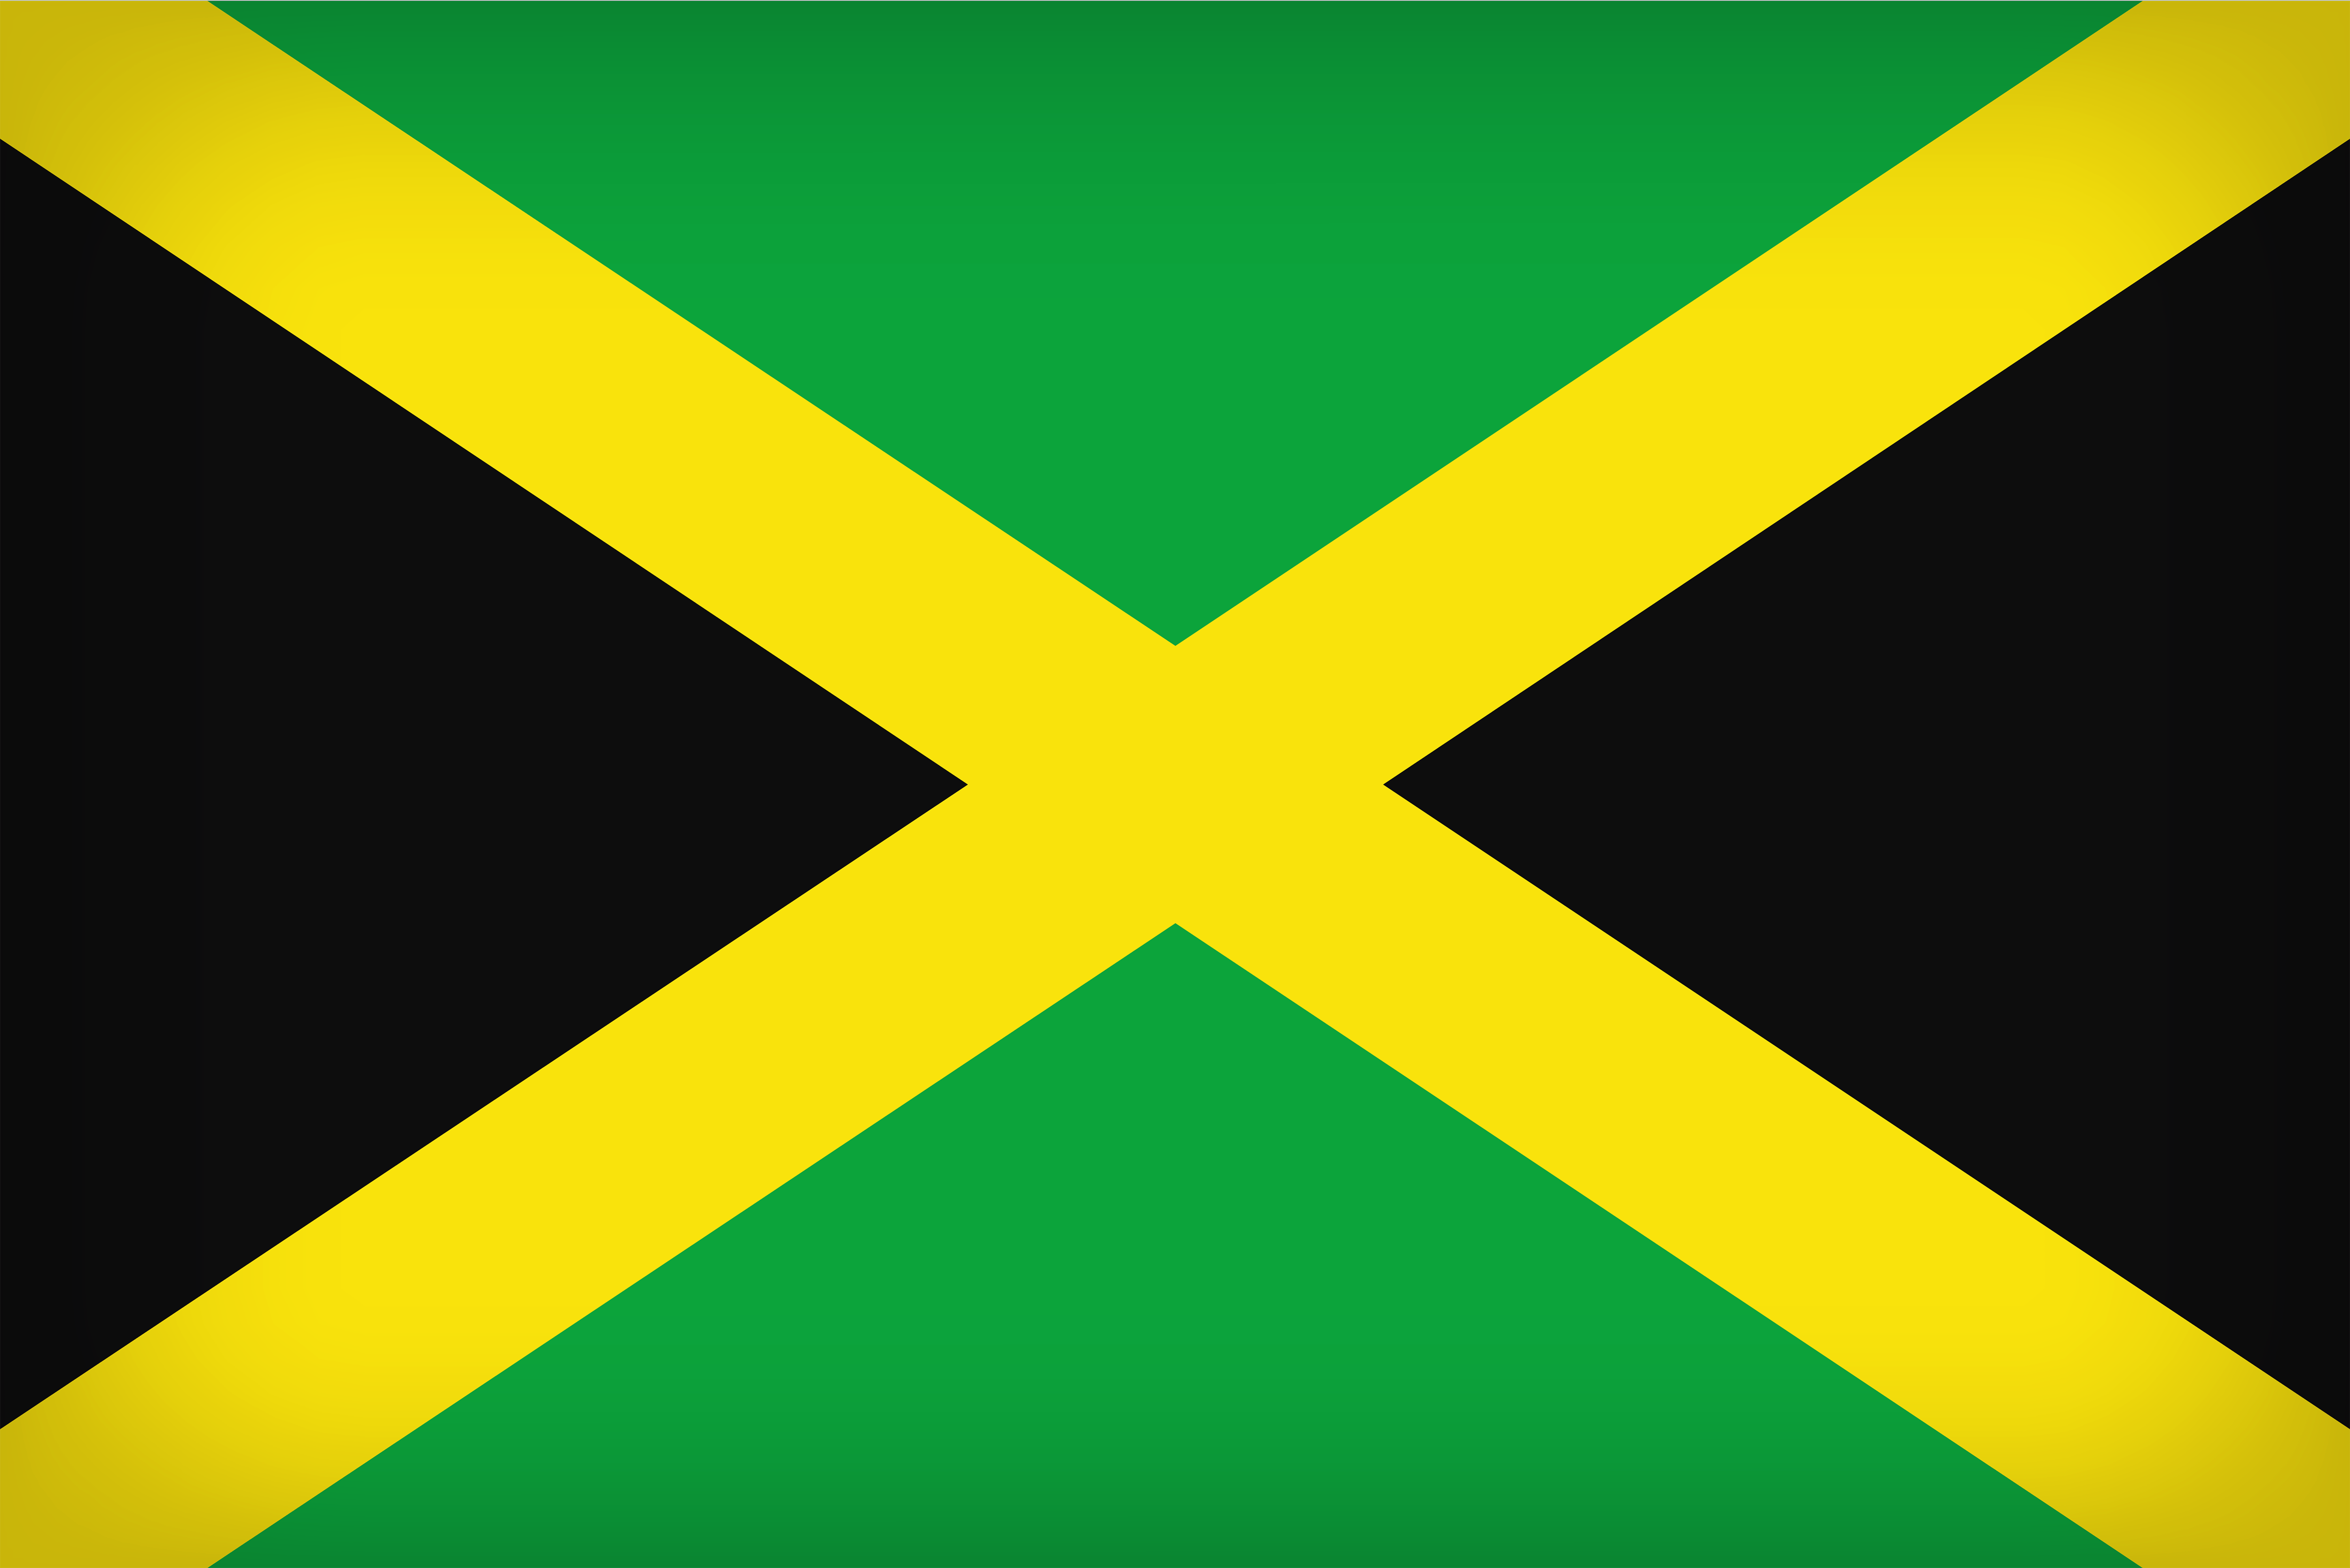 Jamaica Large Flag Gallery Yopriceville High Quality